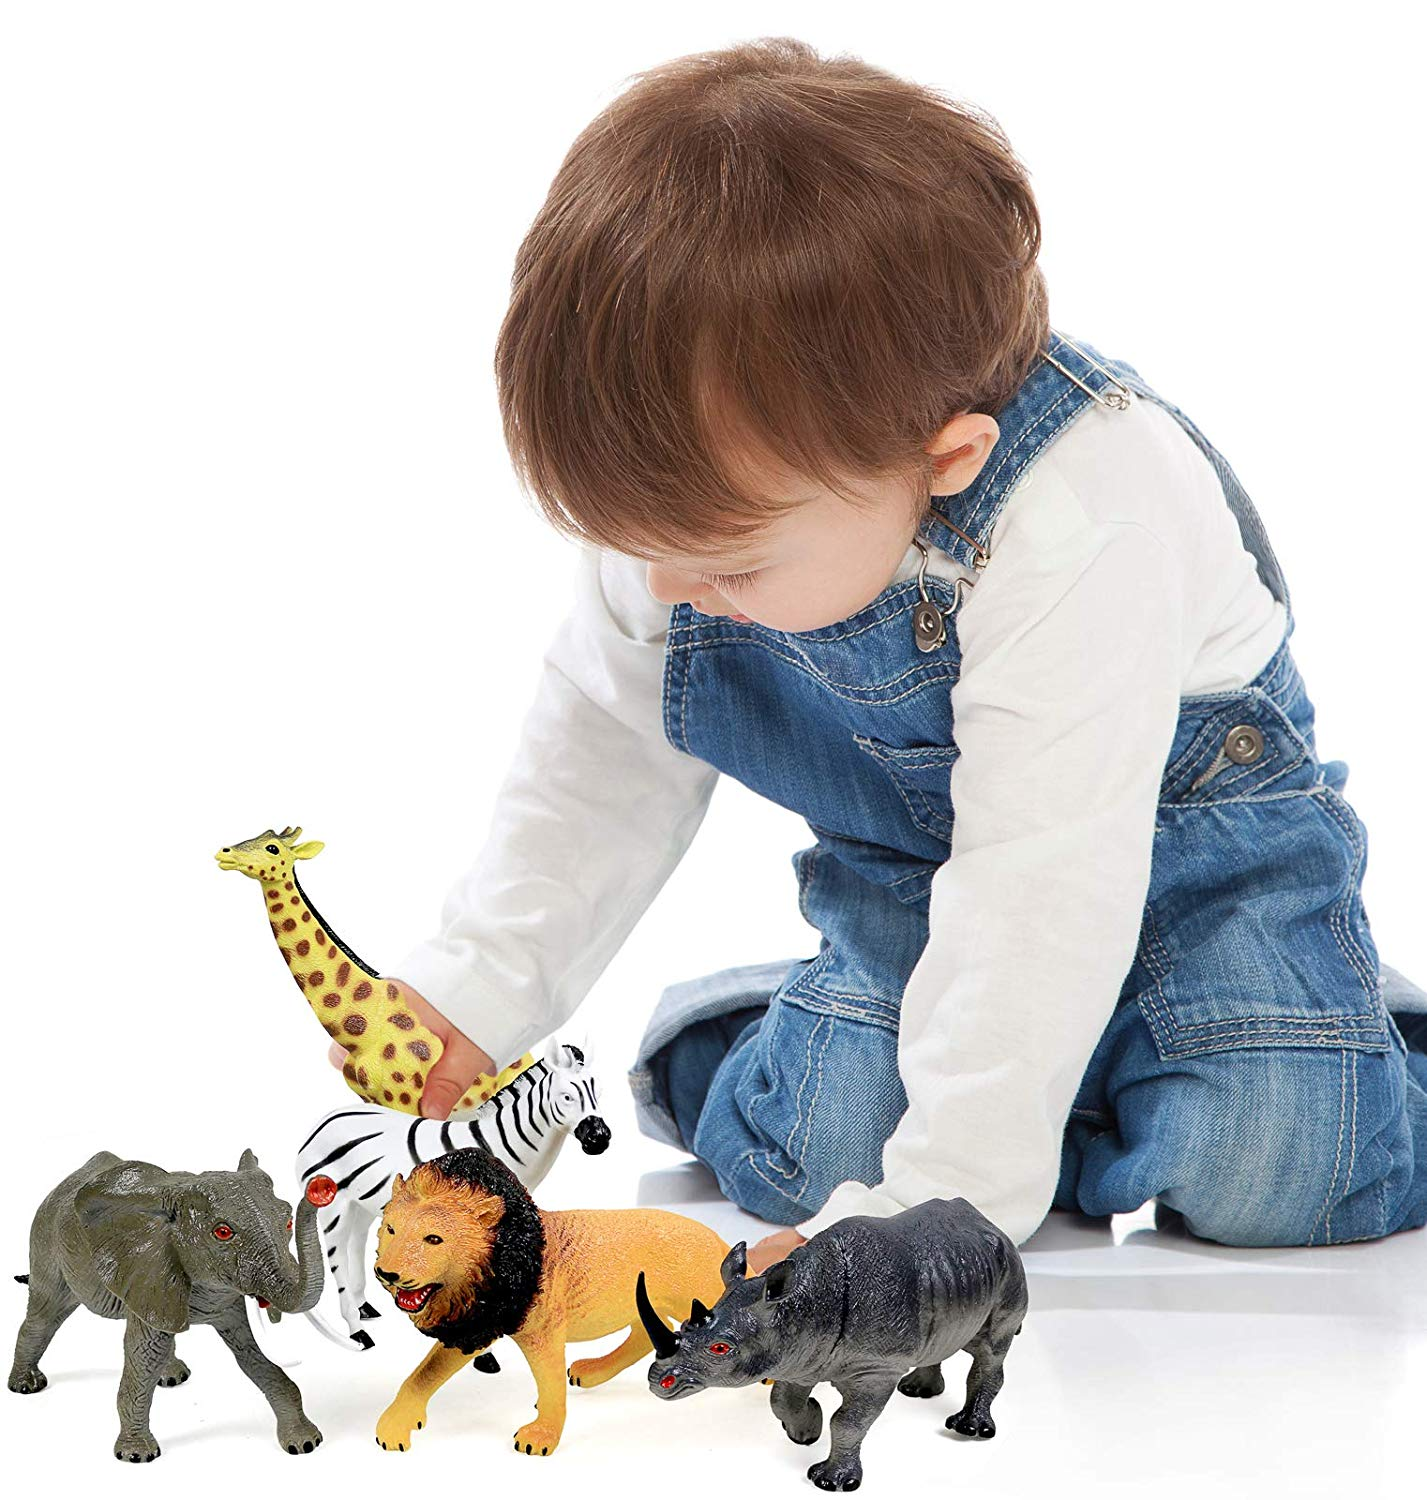 Click N/' Play Click N Play Realistically Designed Jumbo 10.5 Inch African Jungle Animal 5 Piece Playset